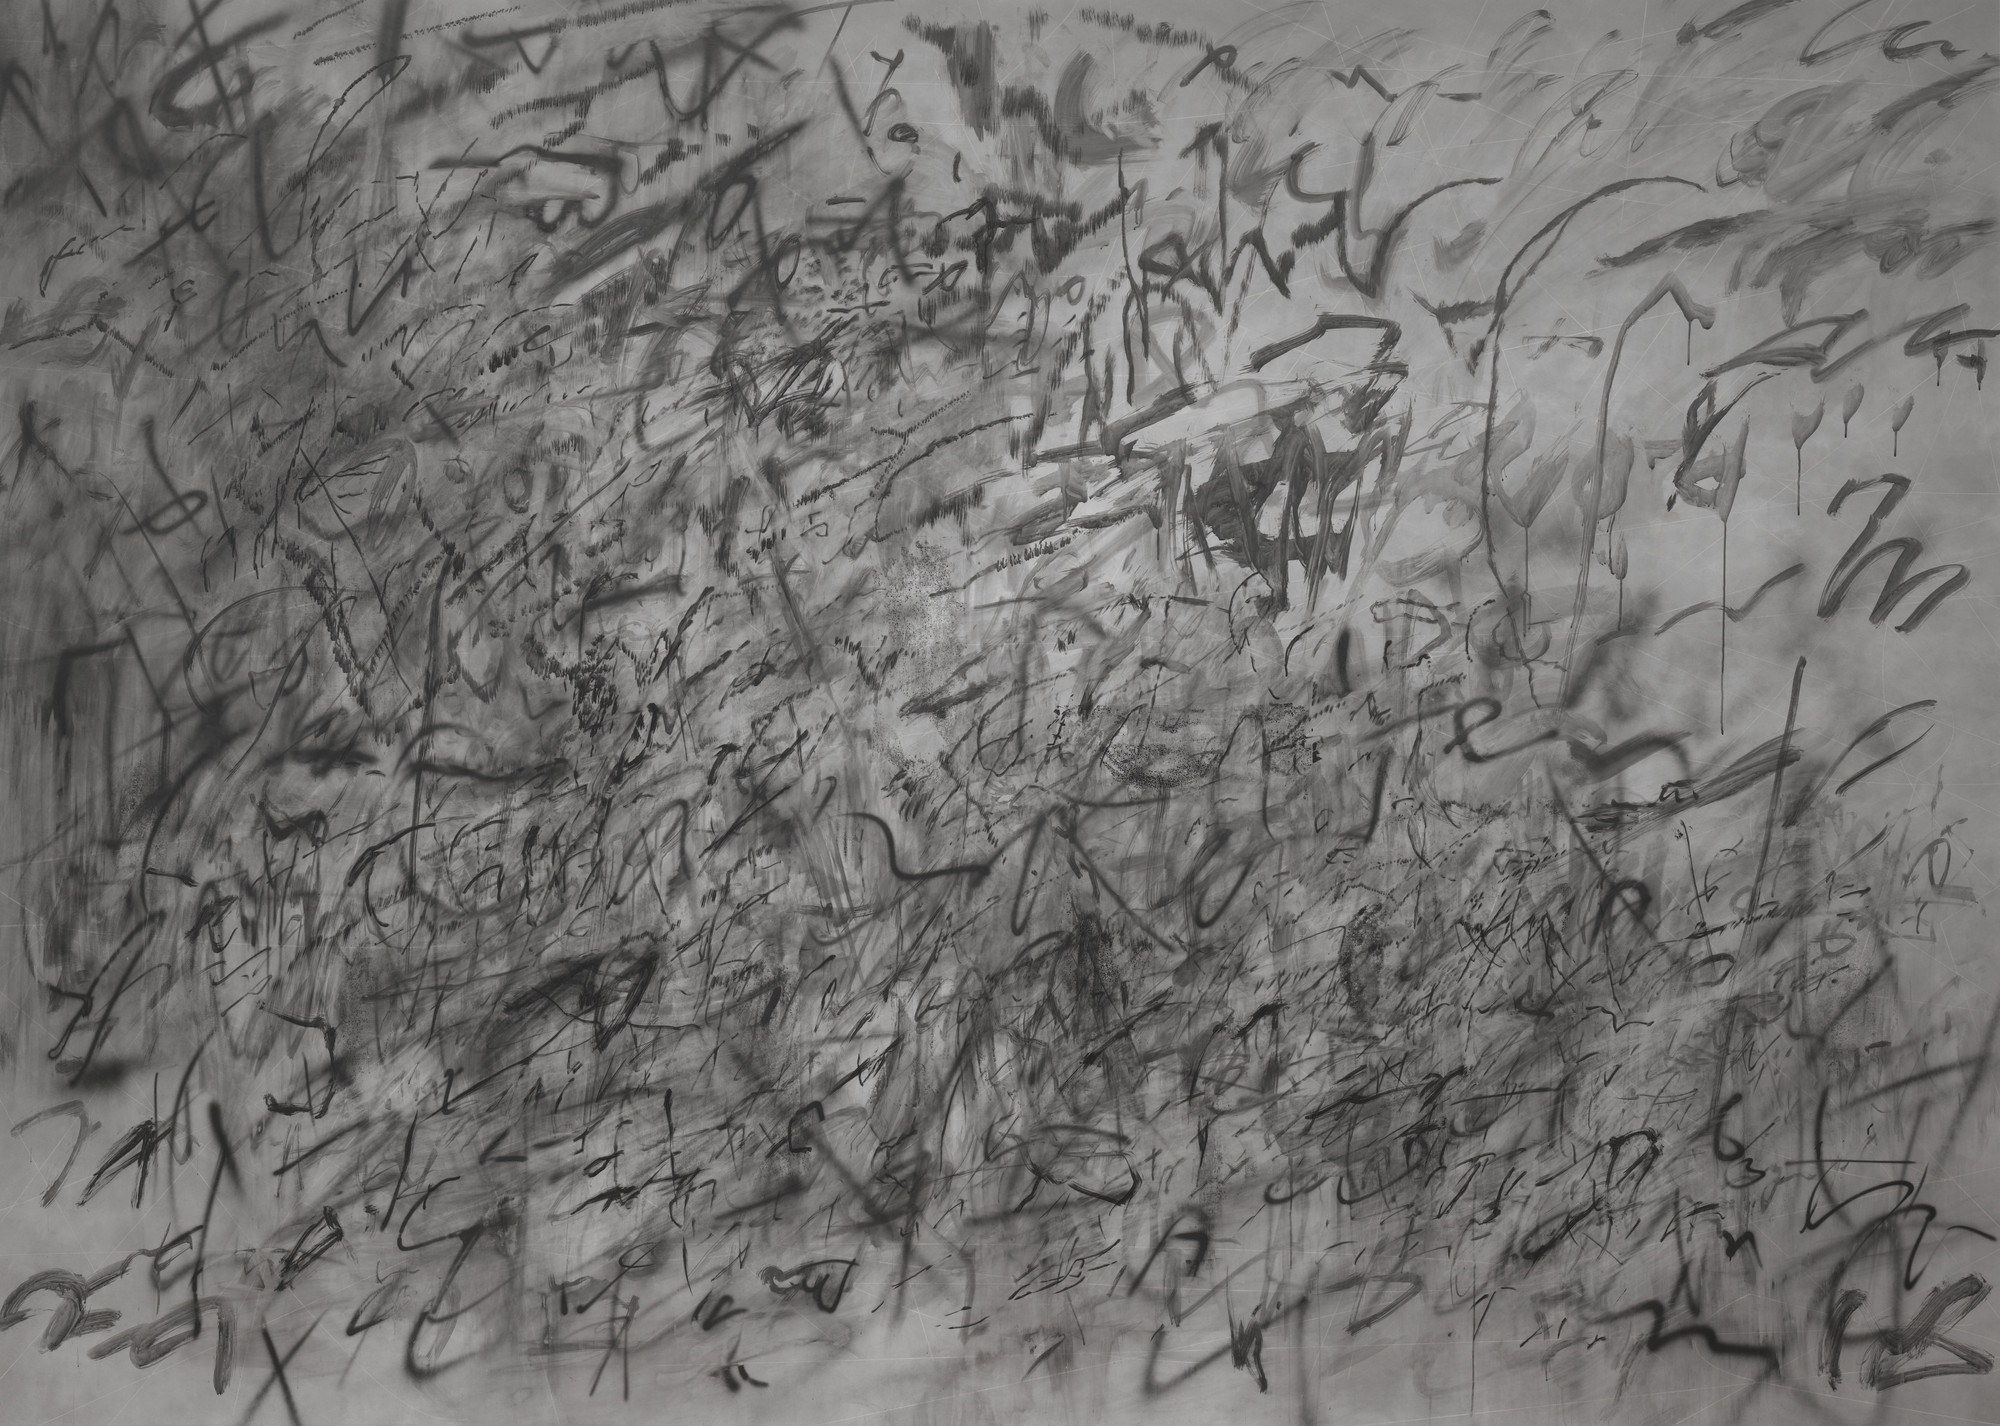 Julie Mehretu. Invisible Sun (algorithm 5, second letter form). 2014